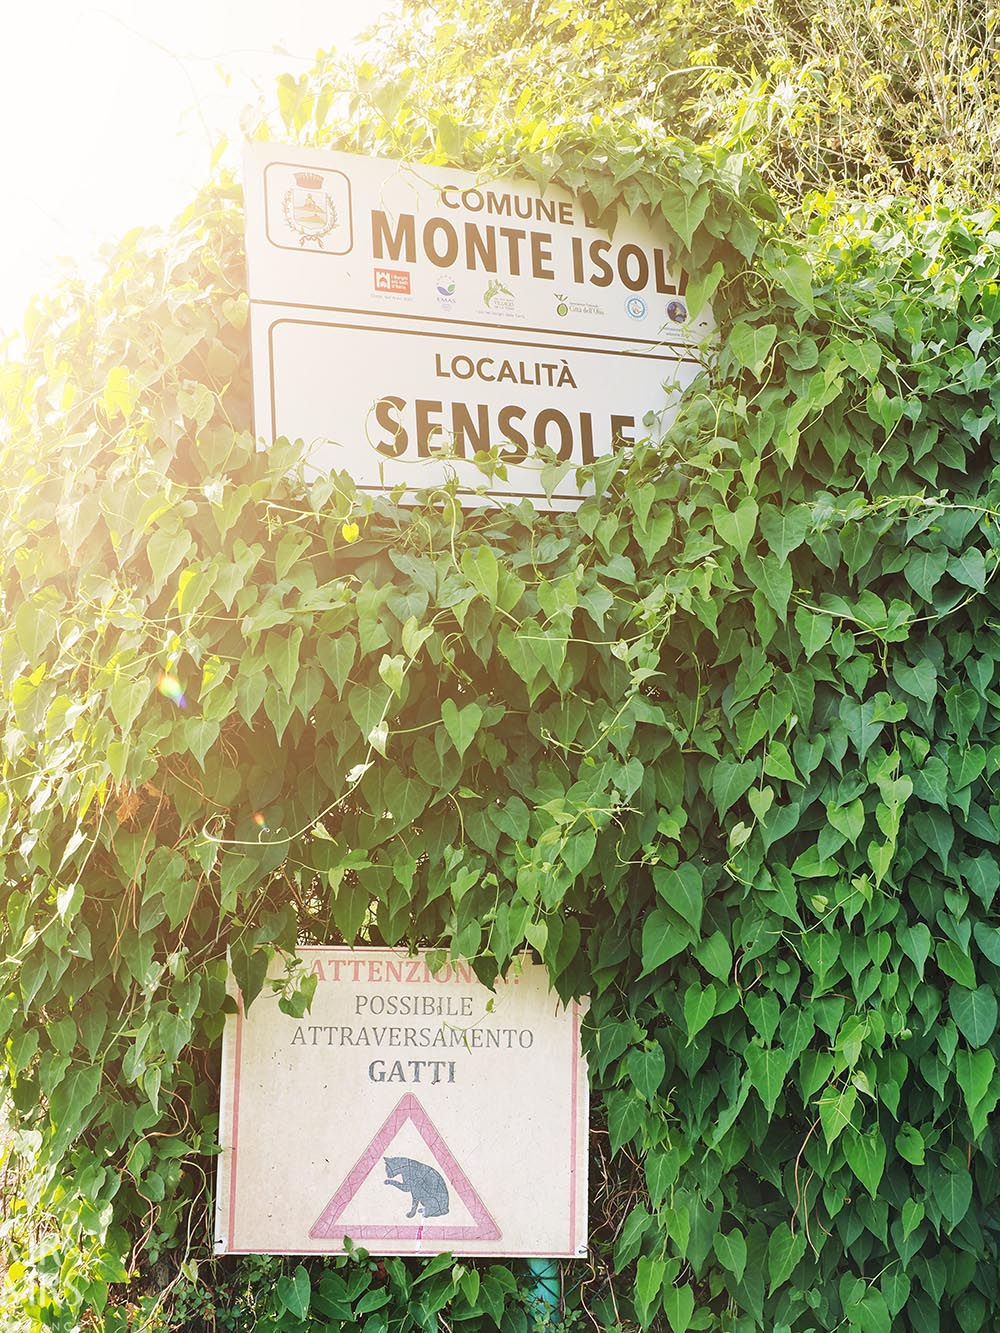 Monte Isola, Lake Iseo, Italy - road sign for cats